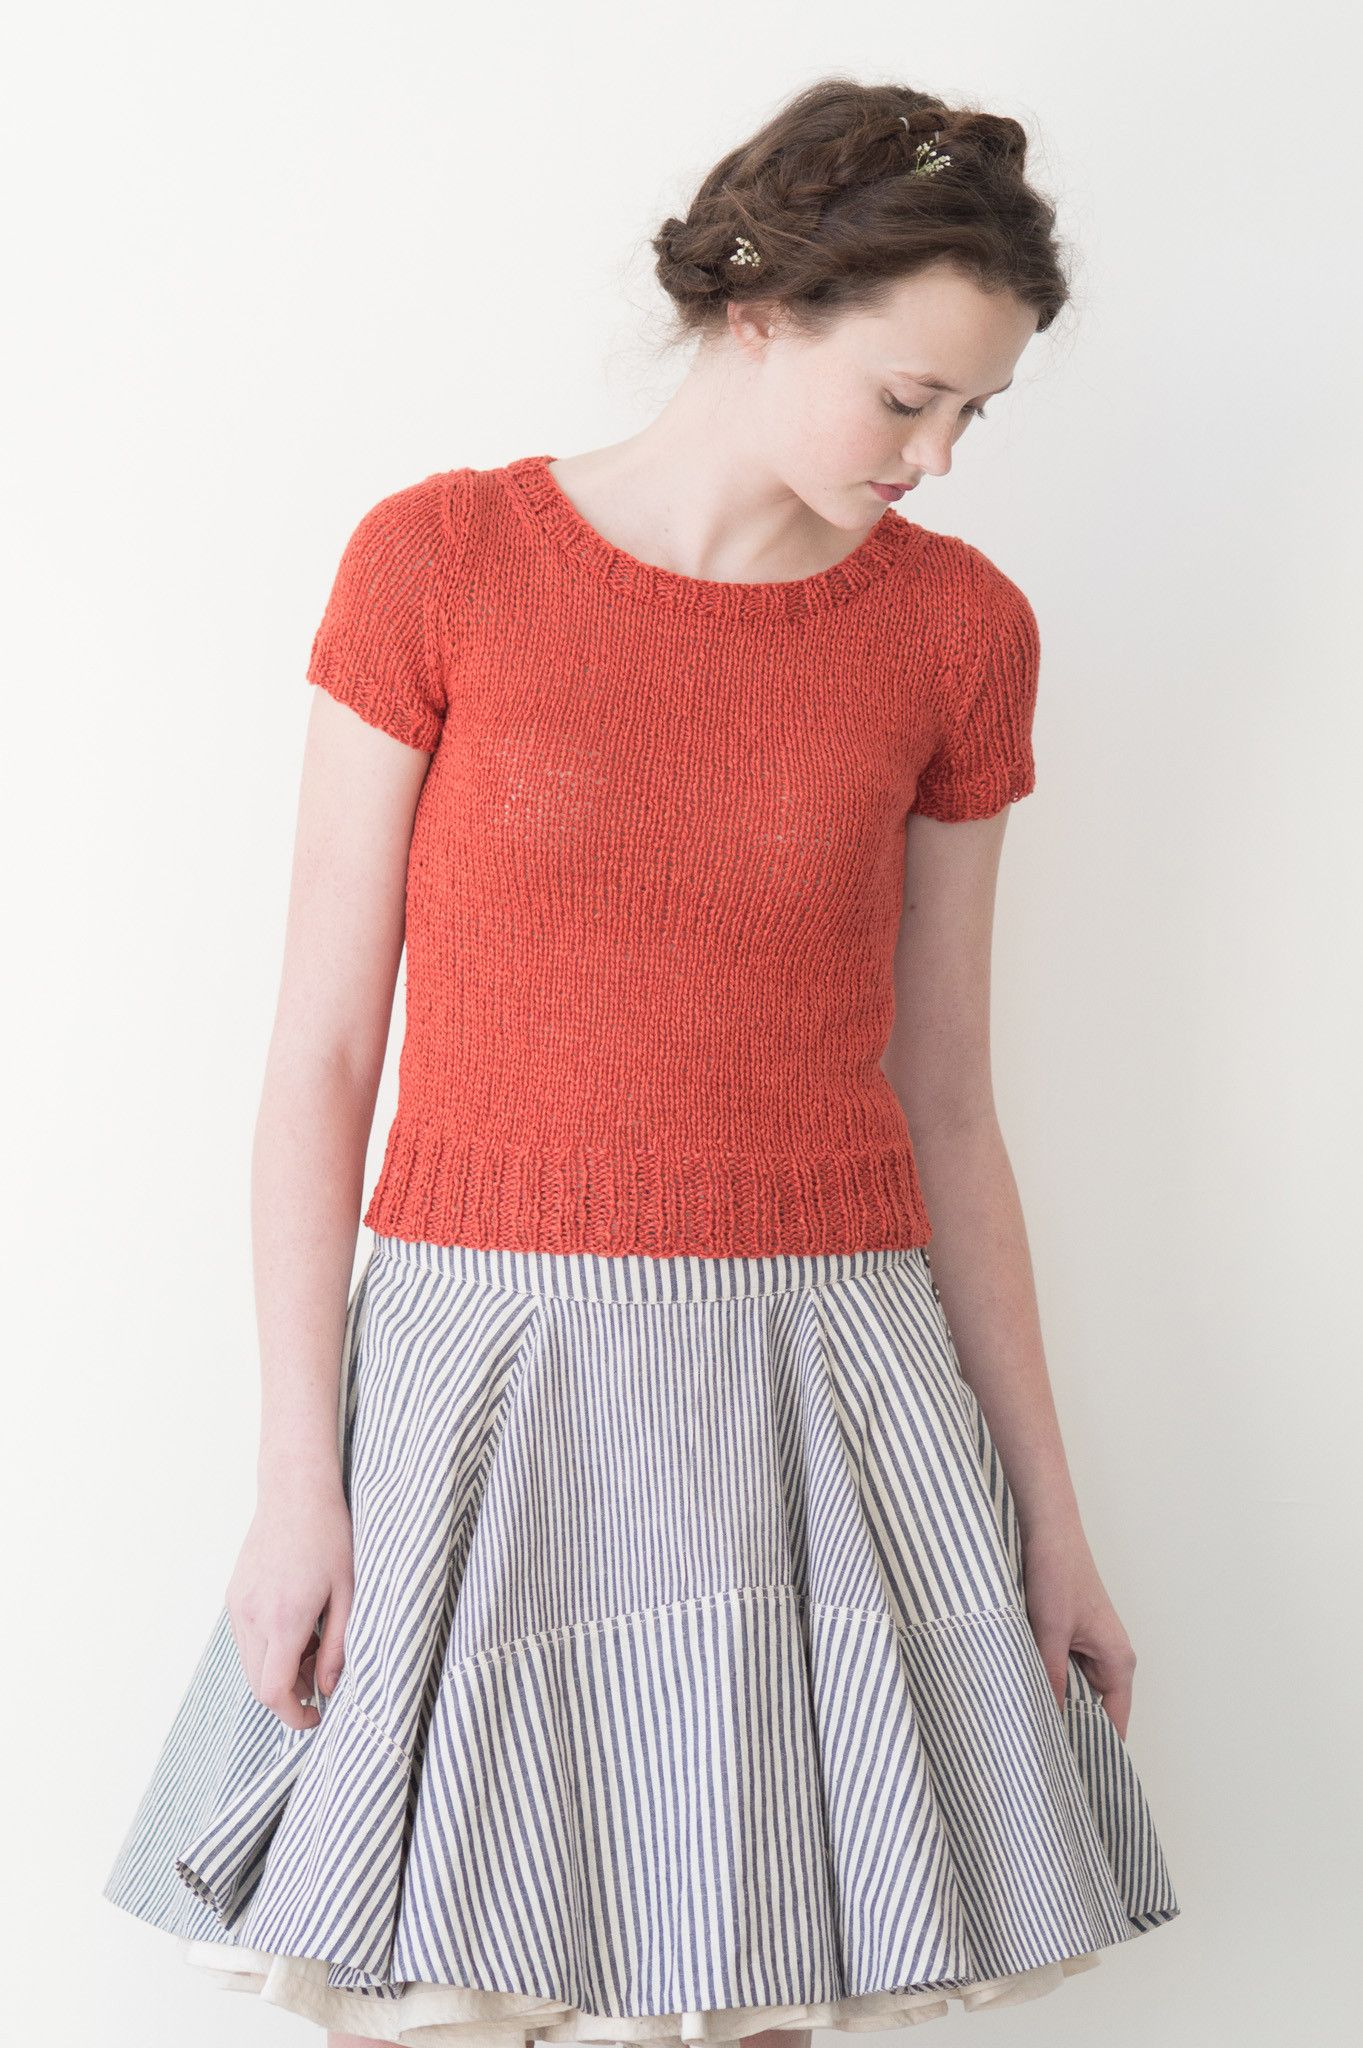 Hibiscus by pam allen quince co kestrel in rosehip quince and hibiscus by pam allen quince co kestrel in rosehip sweater patternsknitting dt1010fo